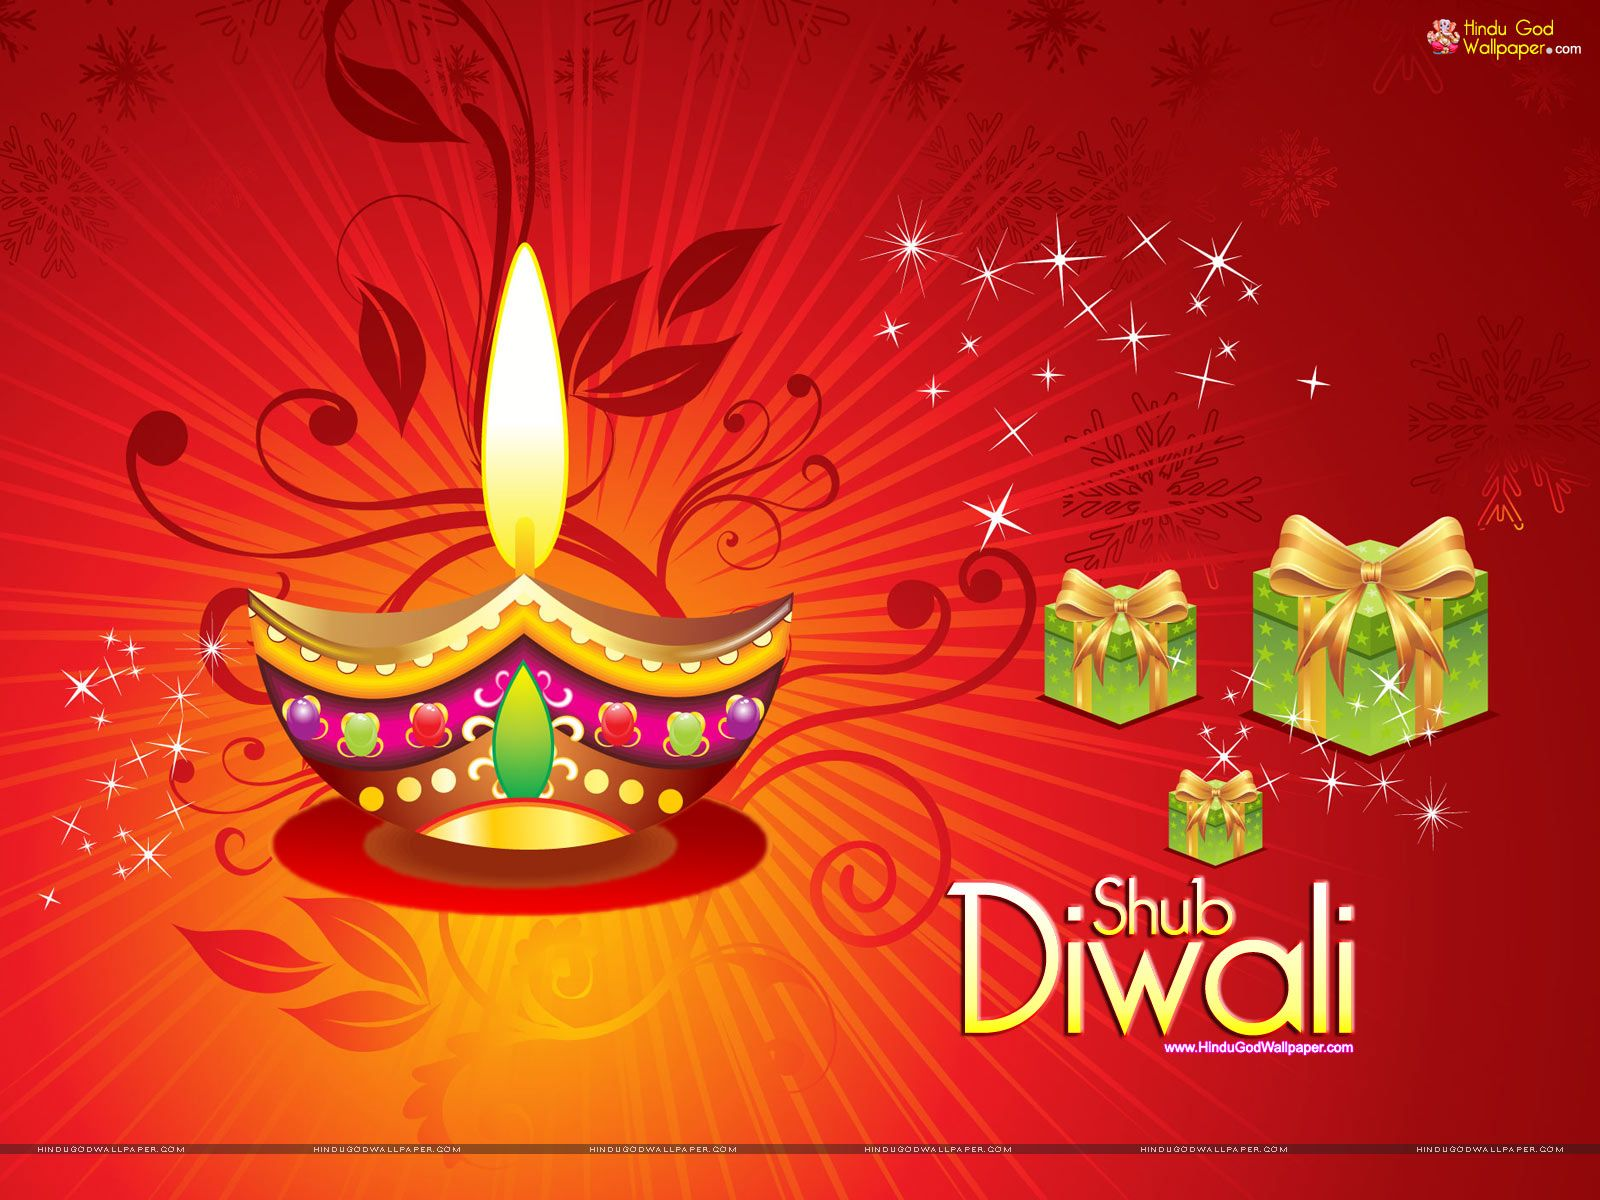 happy diwali wallpaper hd high resolution download | diwali